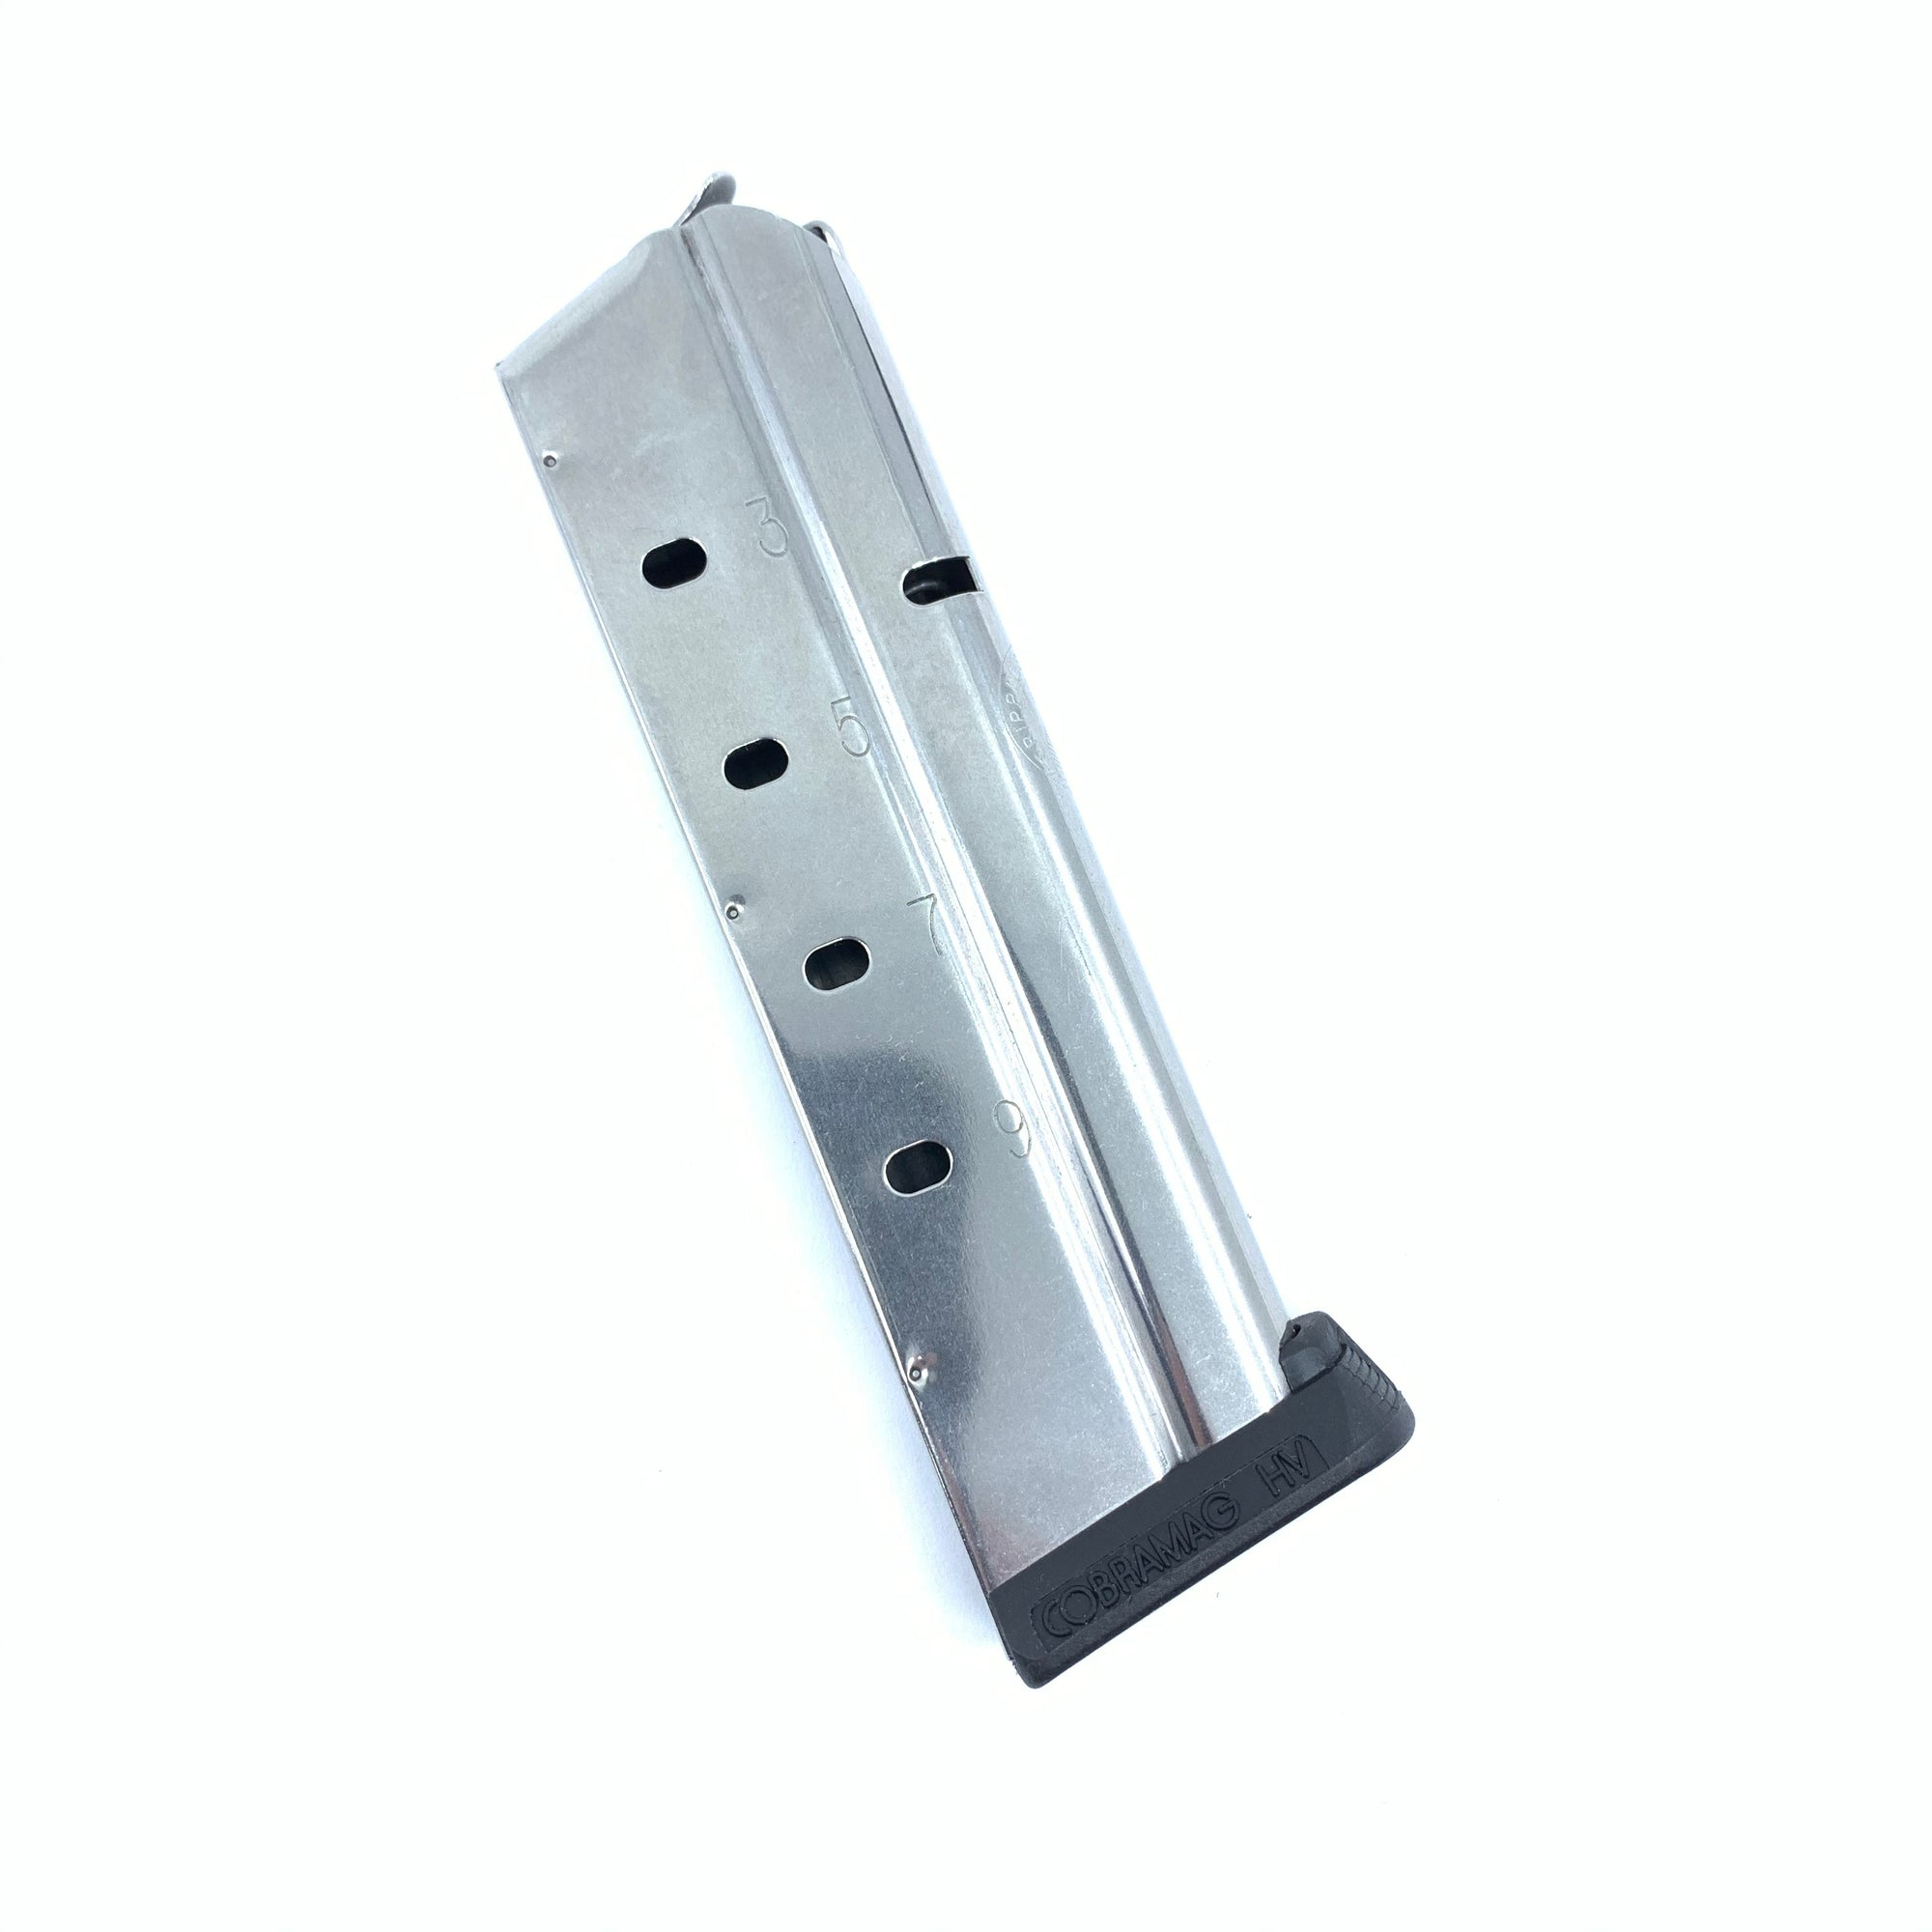 Tripp Research 9mm Luger 1911 Magazine